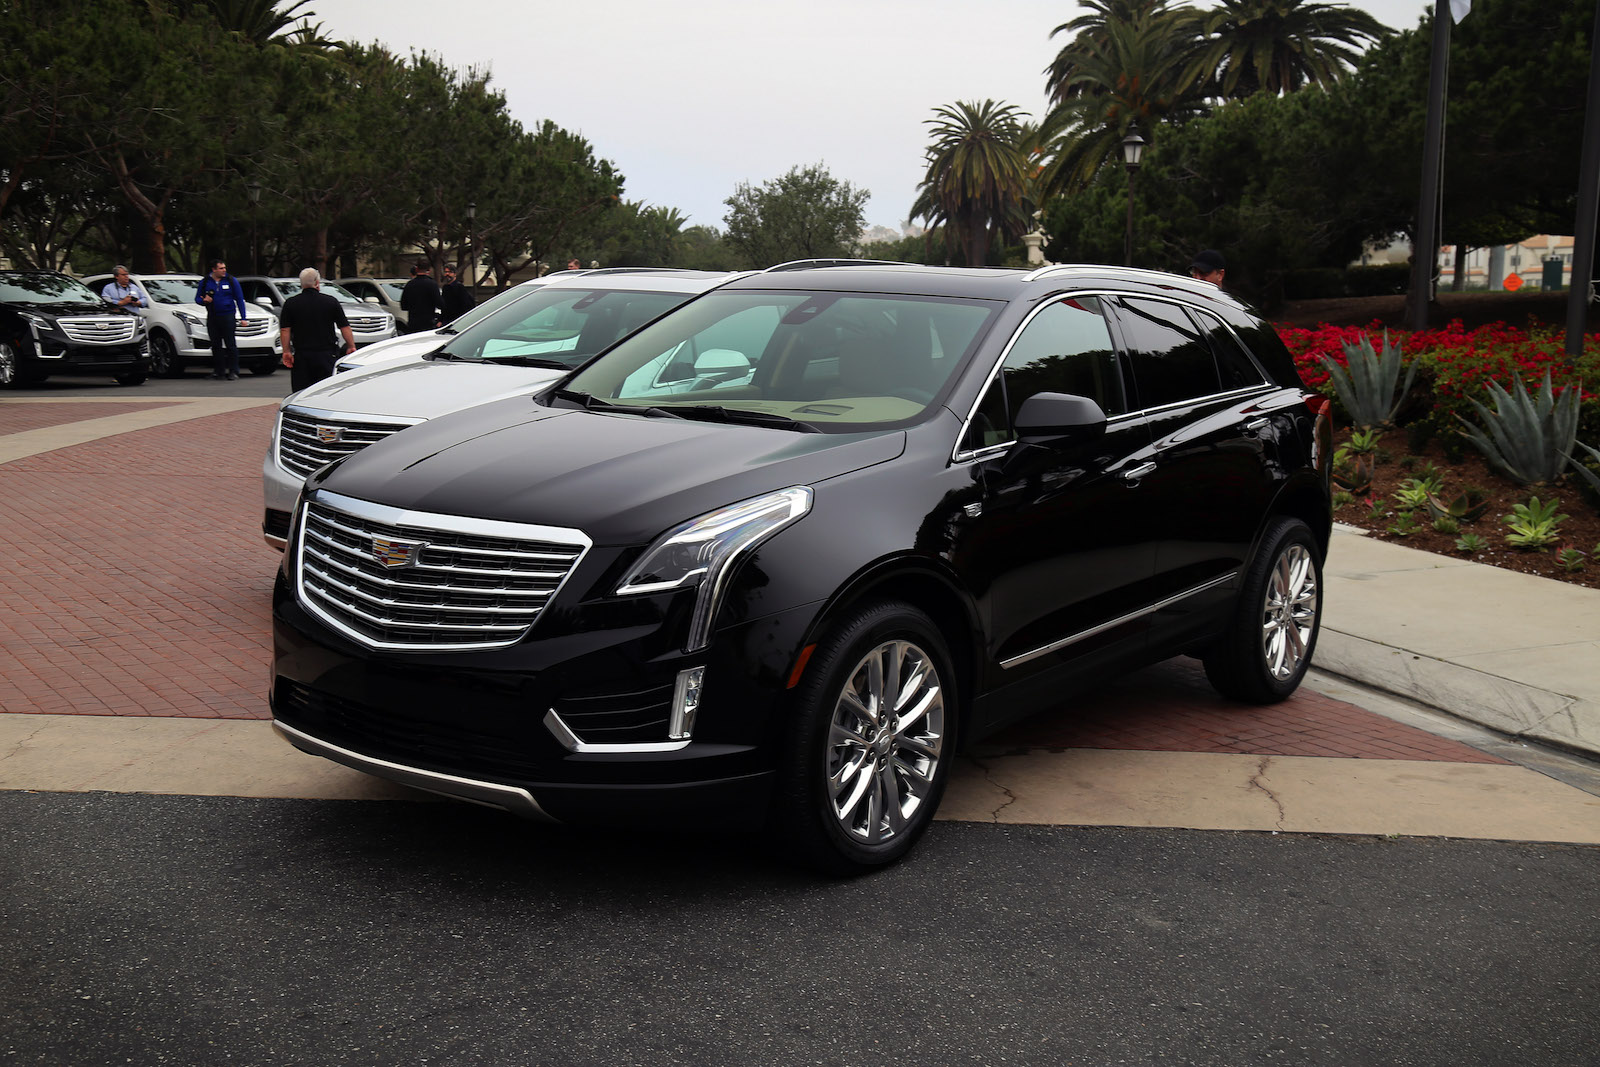 First Drive: 2017 Cadillac XT5 | Canadian Auto Review